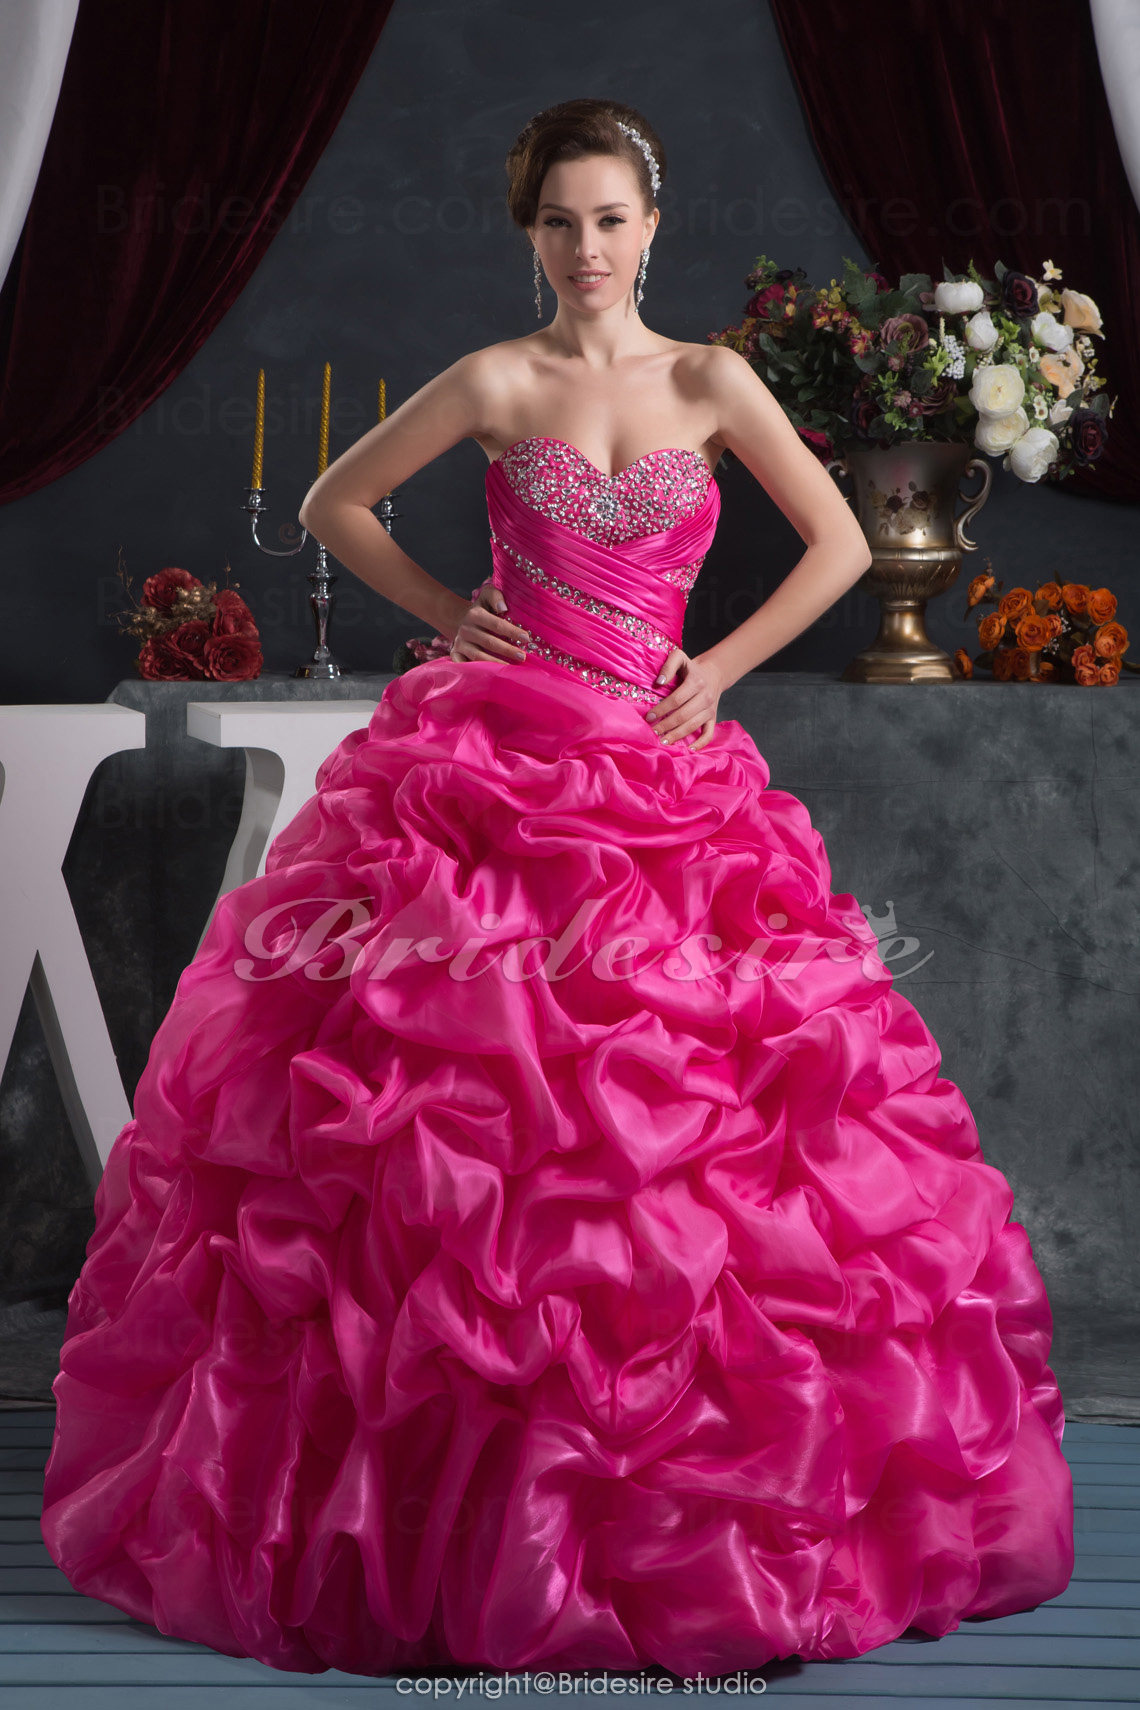 Princess Sweetheart Floor-length Sleeveless Taffeta Dress